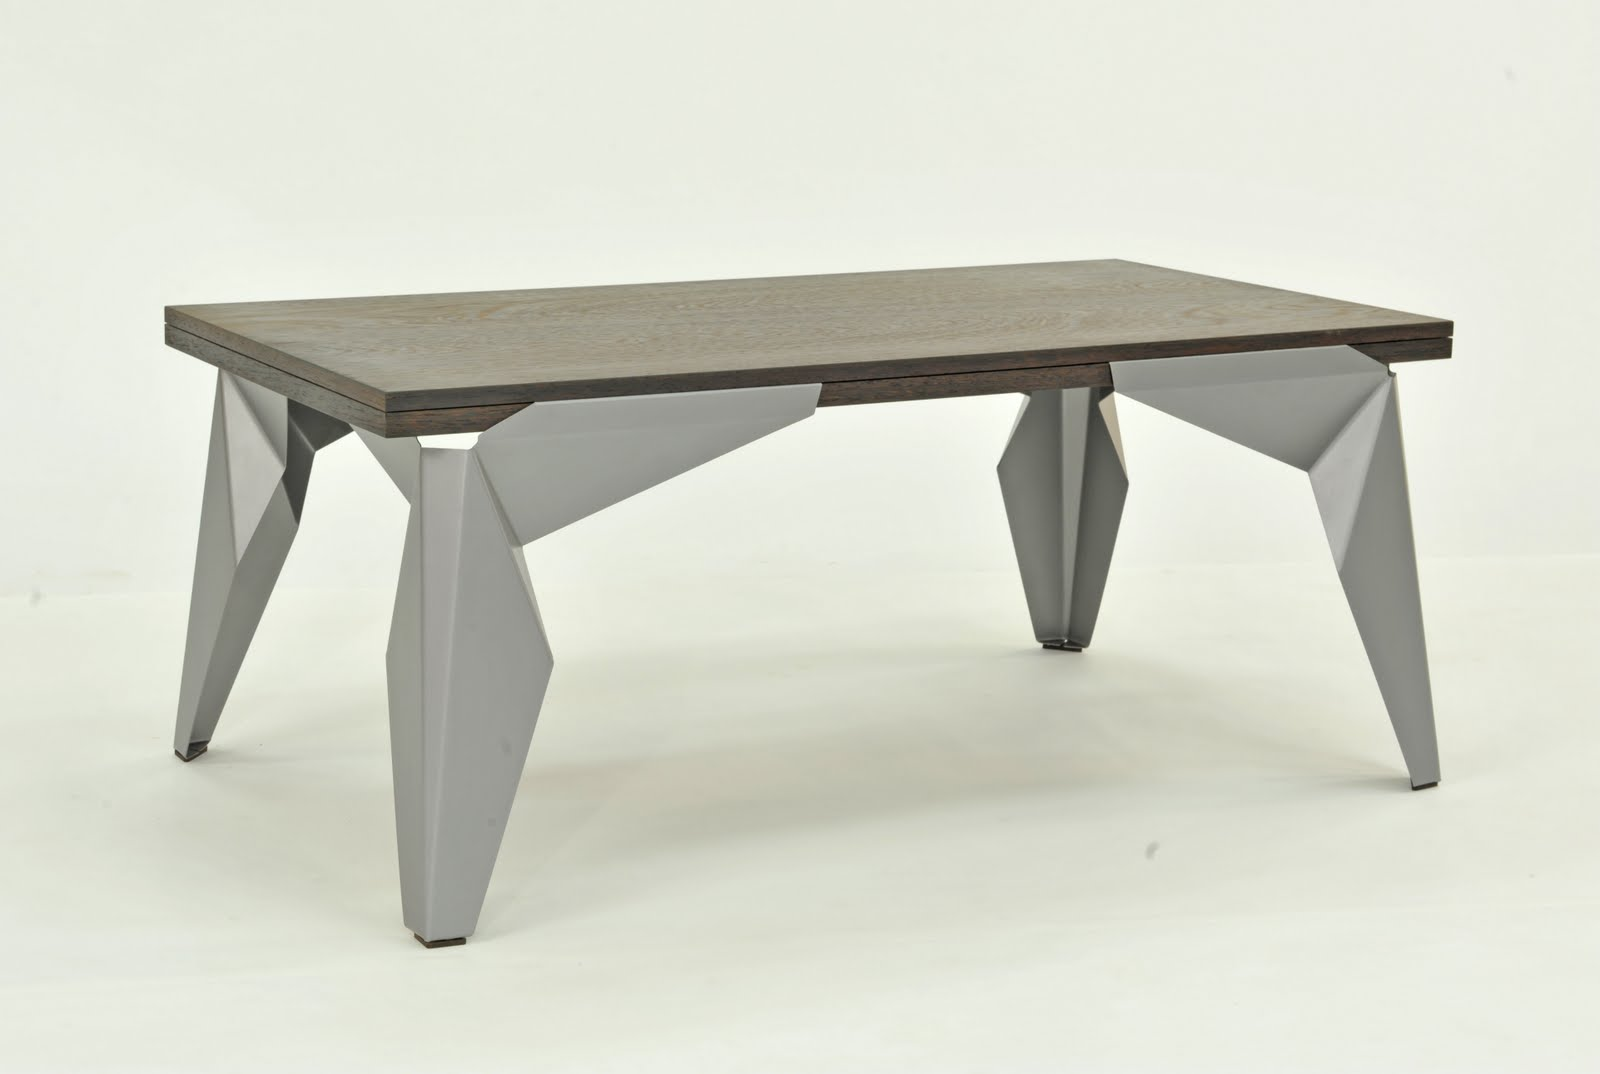 Wood Table With Metal Legs Design